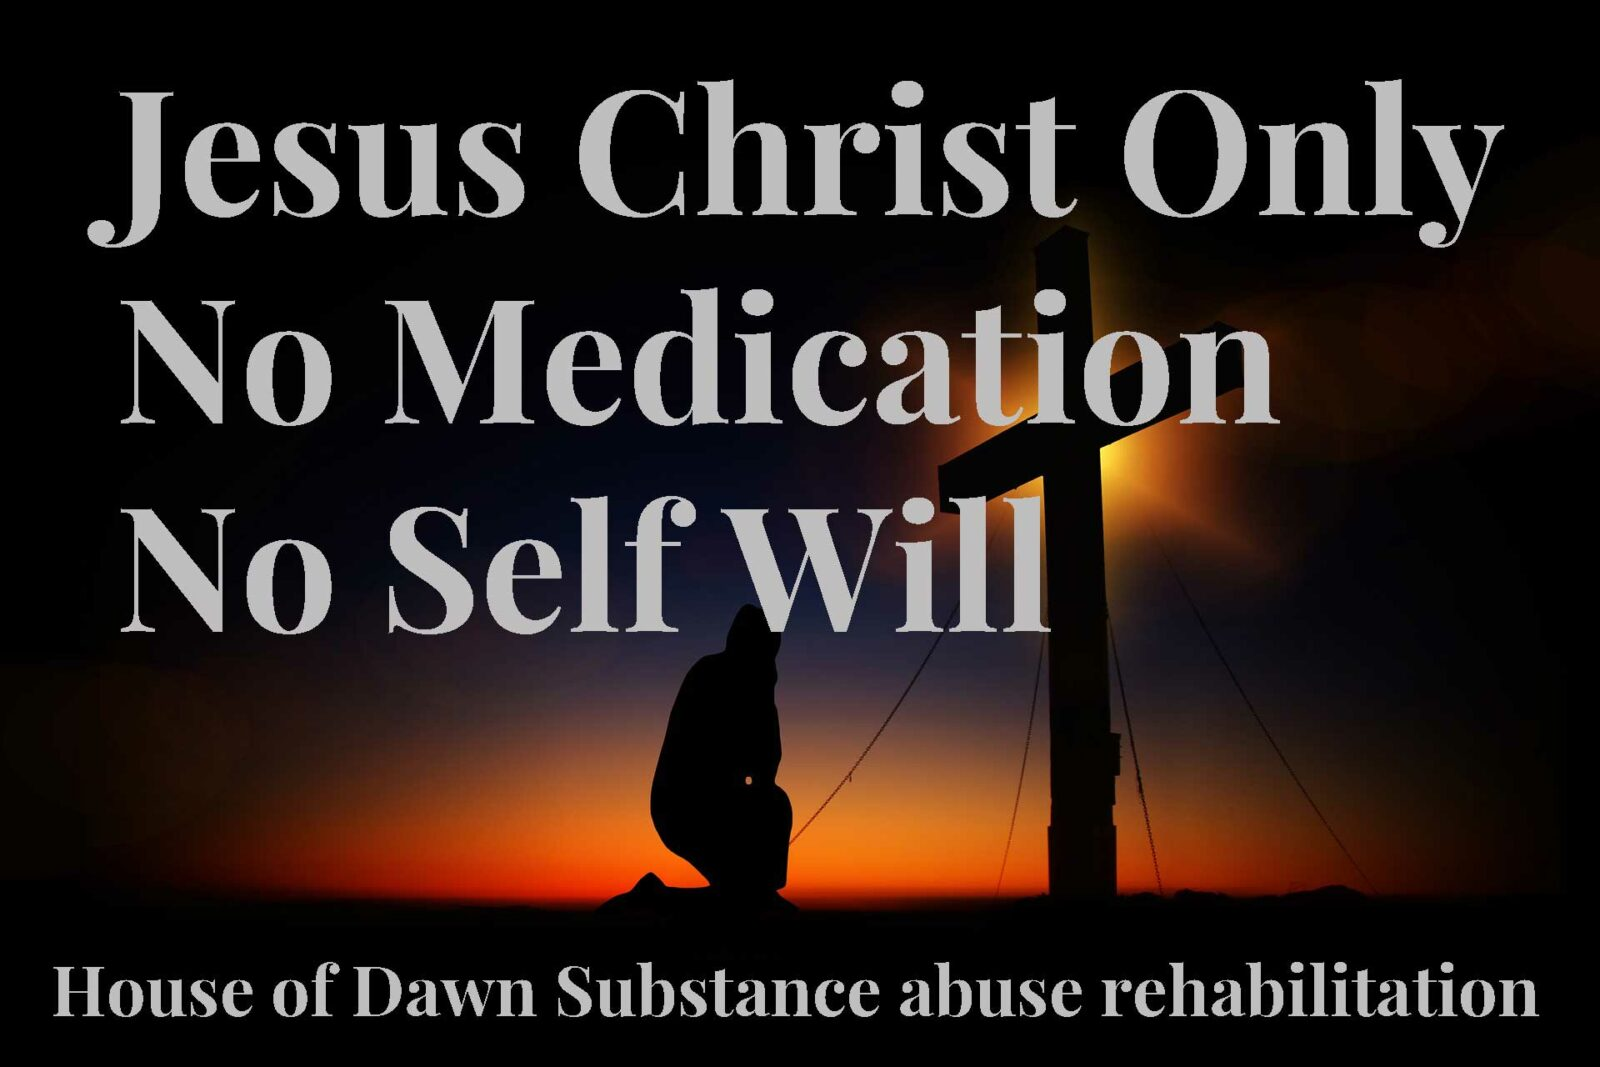 Substance abuse rehabilitation